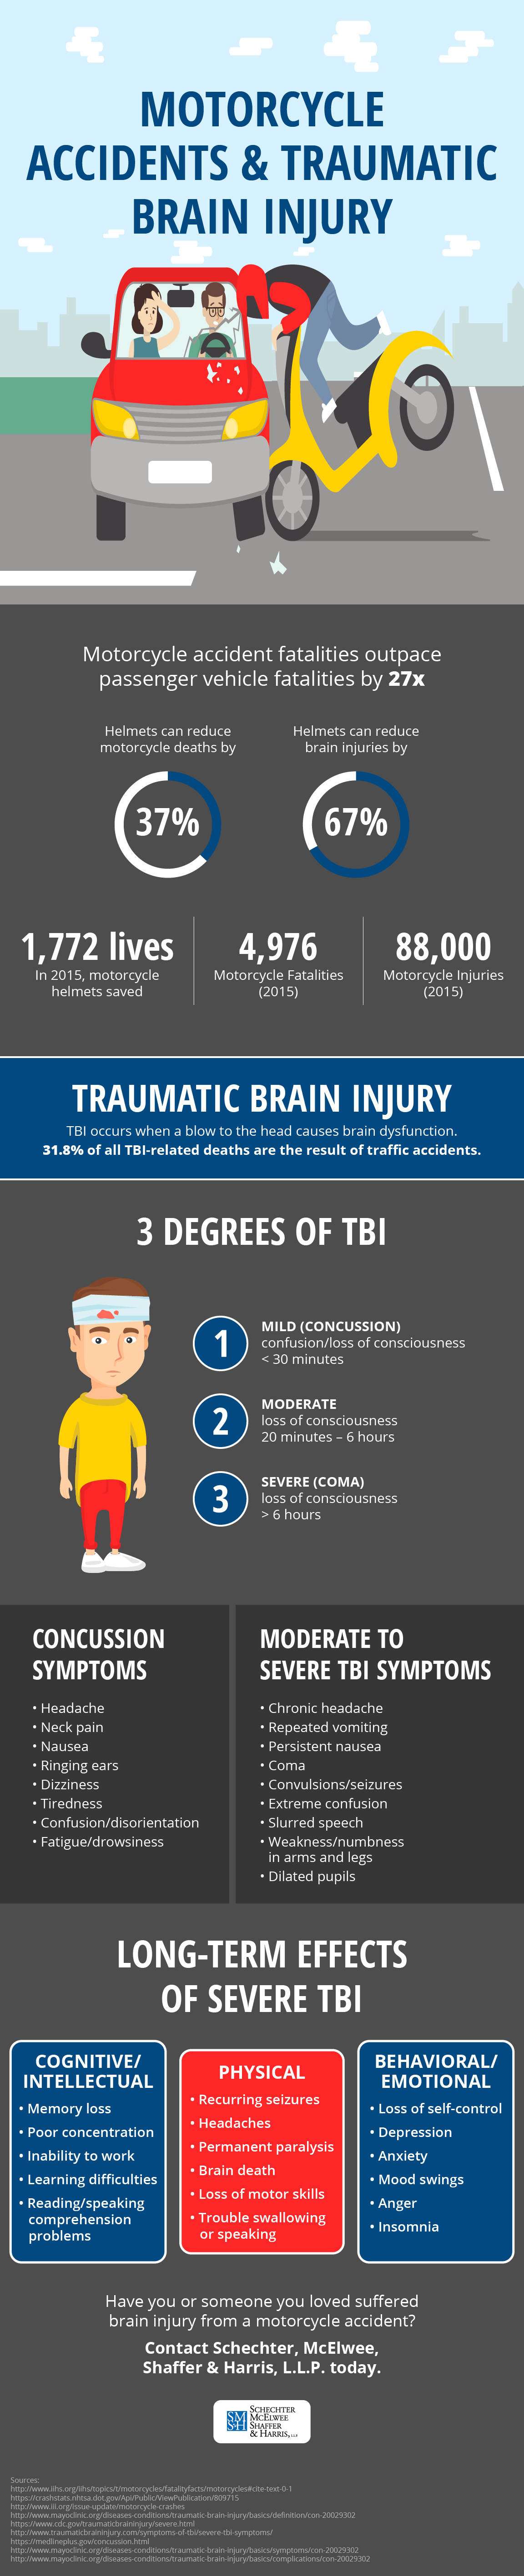 Motorcycle Accidents and Traumatic Brain Injury Infographic